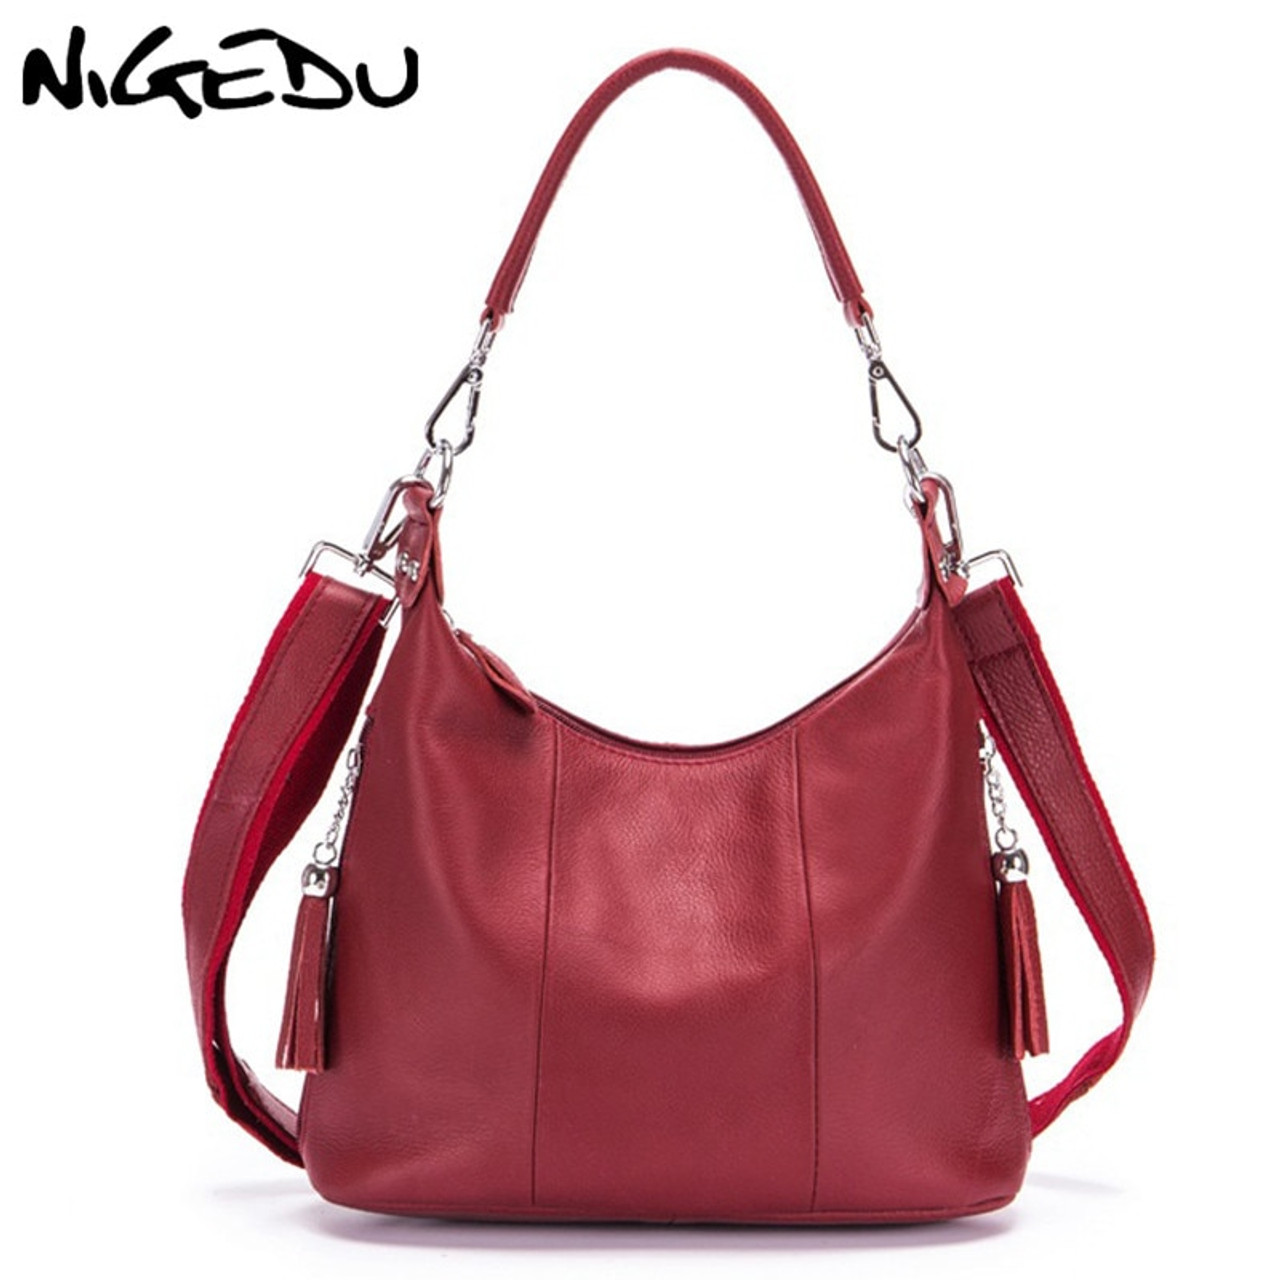 0f055119845a NIGEDU Genuine Leather Women handbag Tassel Messenger Bags for Women s  Shoulder Bag Cowhide Female Messenger Bags ...